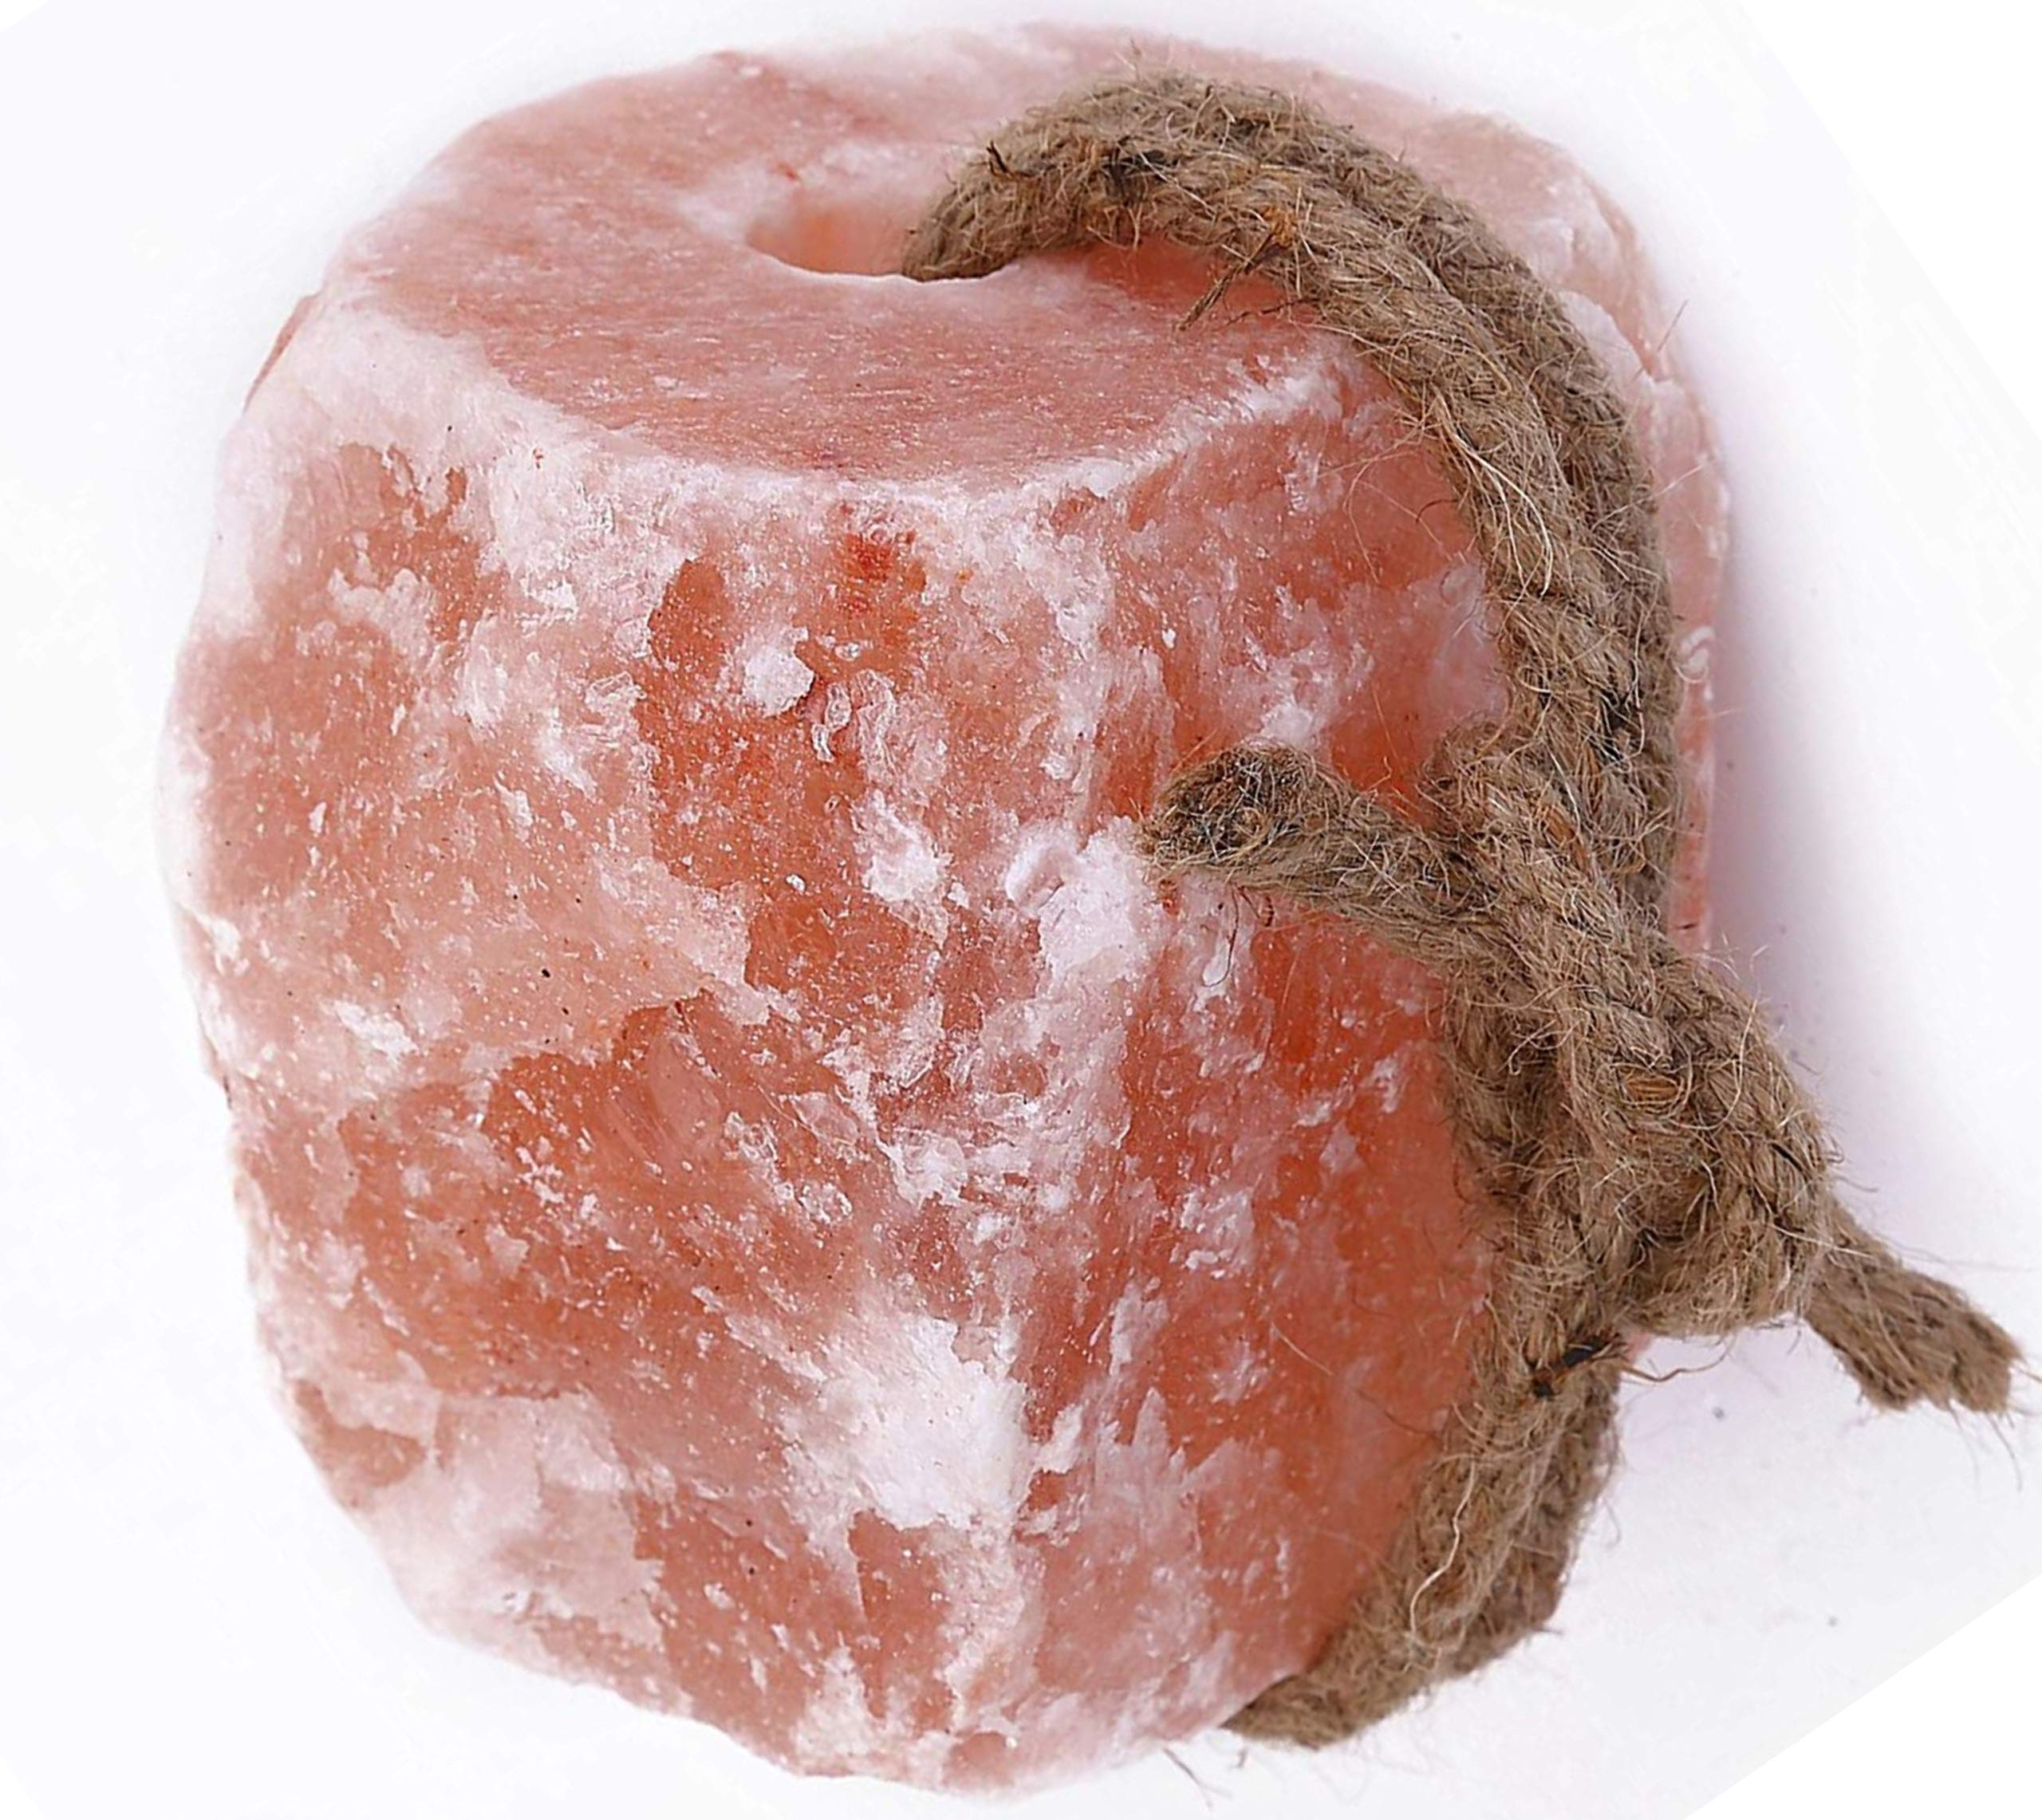 Himalayan Mineral Salt Lick (5-7 lbs on a Rope 100% Natural Product | Salt Block for Horses, Deer, Goats, Cattle, Rabbits | Vermont Salt & Stone (5-7 lbs on a Rope) by Himalayan Mineral Salt Lick